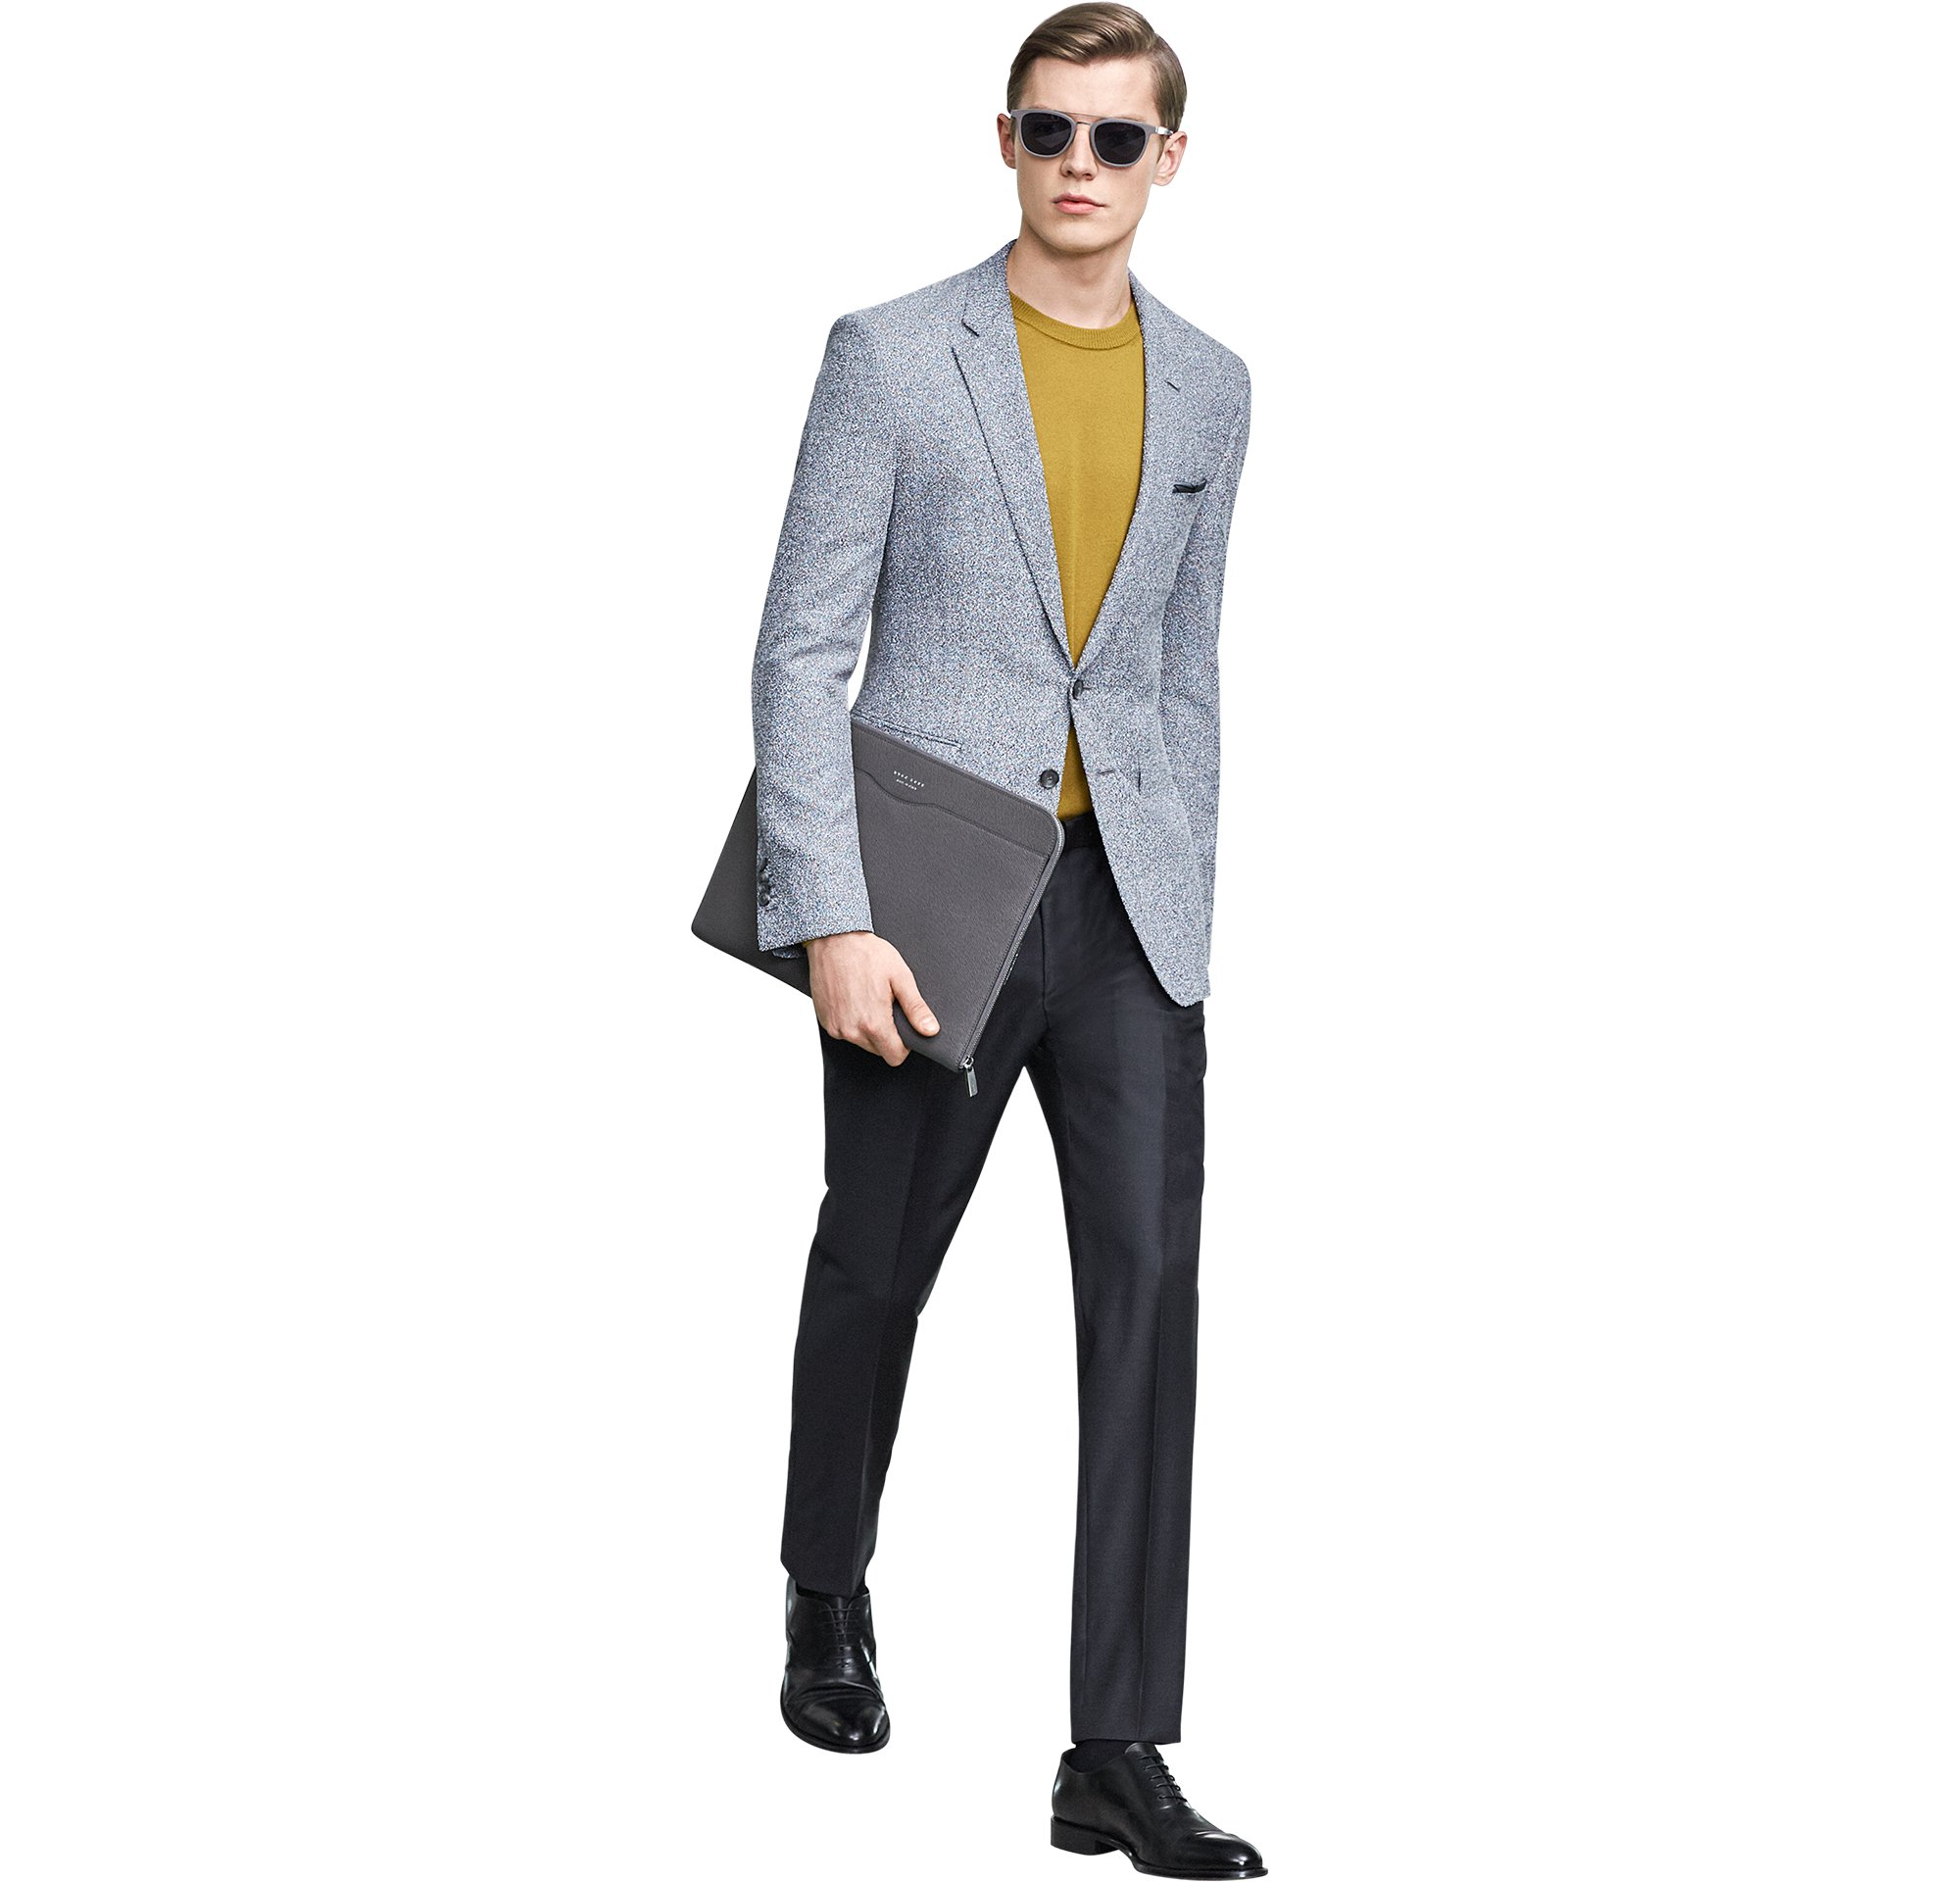 Grey jacket over yellow knitwear and black trousers with bag and shoes by BOSS